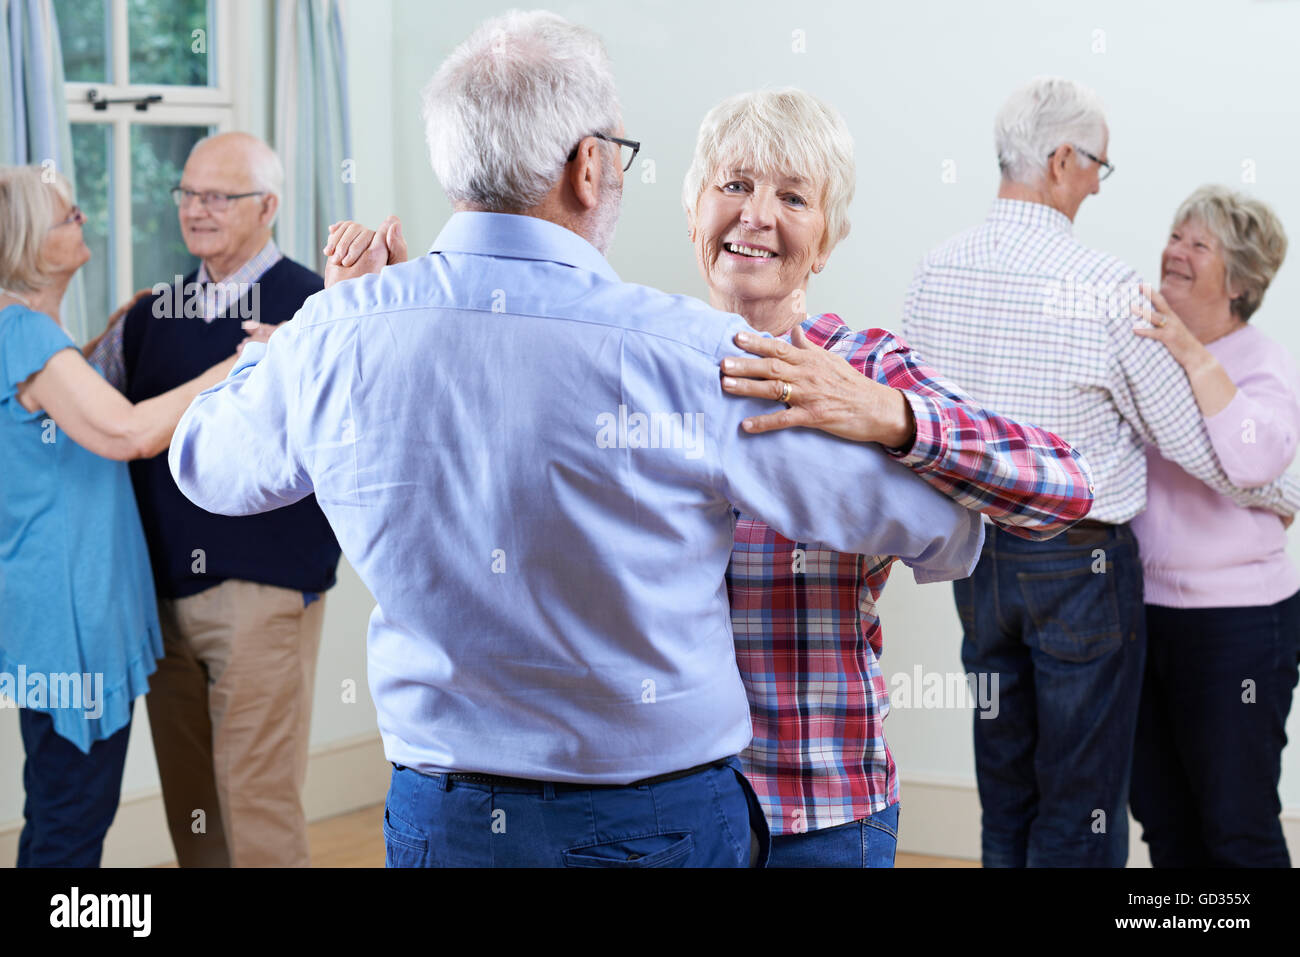 Group Of Seniors Enjoying Dancing Club Together - Stock Image